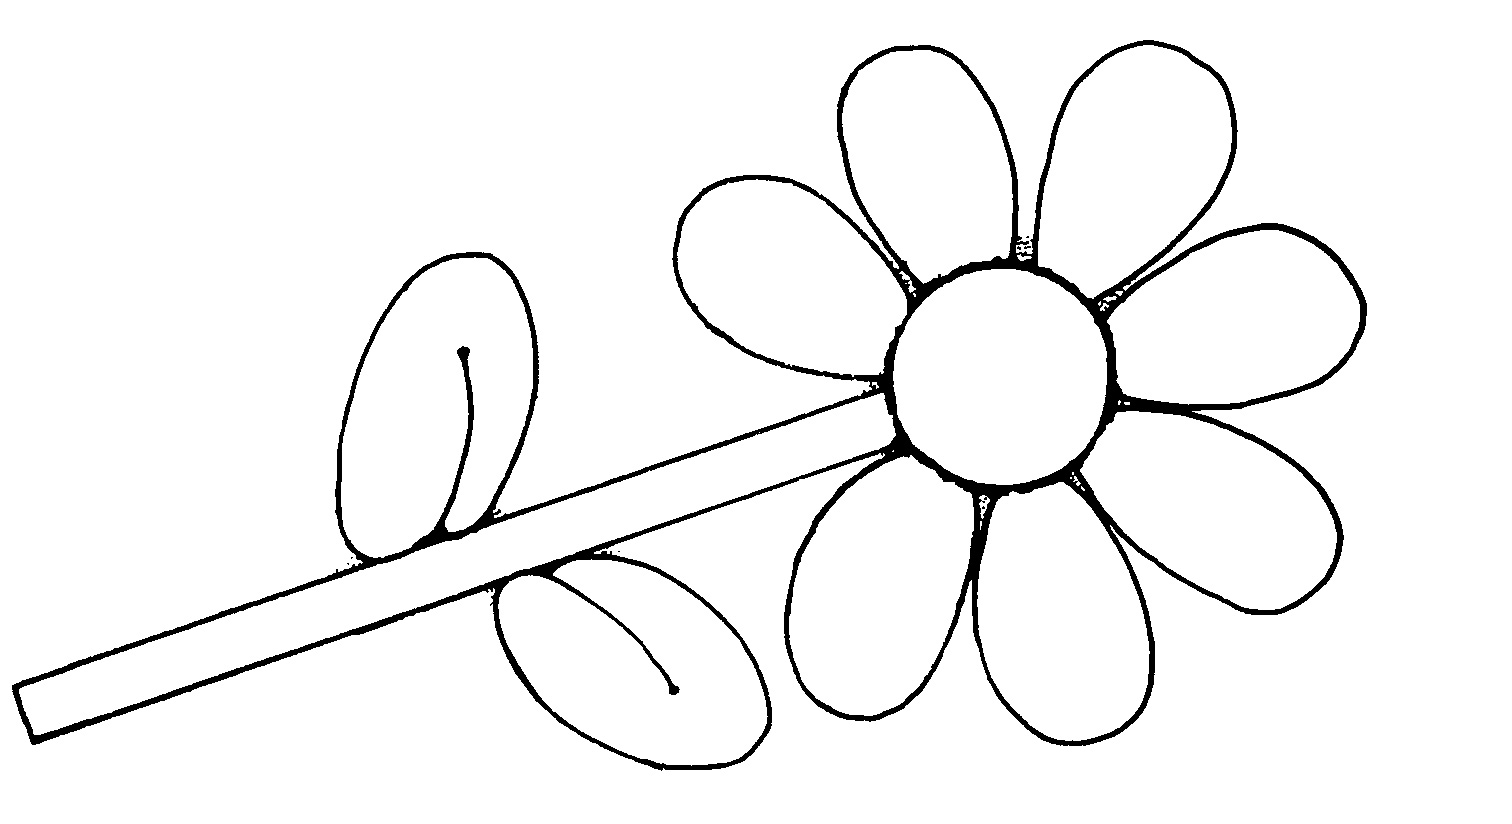 Flower Clipart Black and White Free Download.